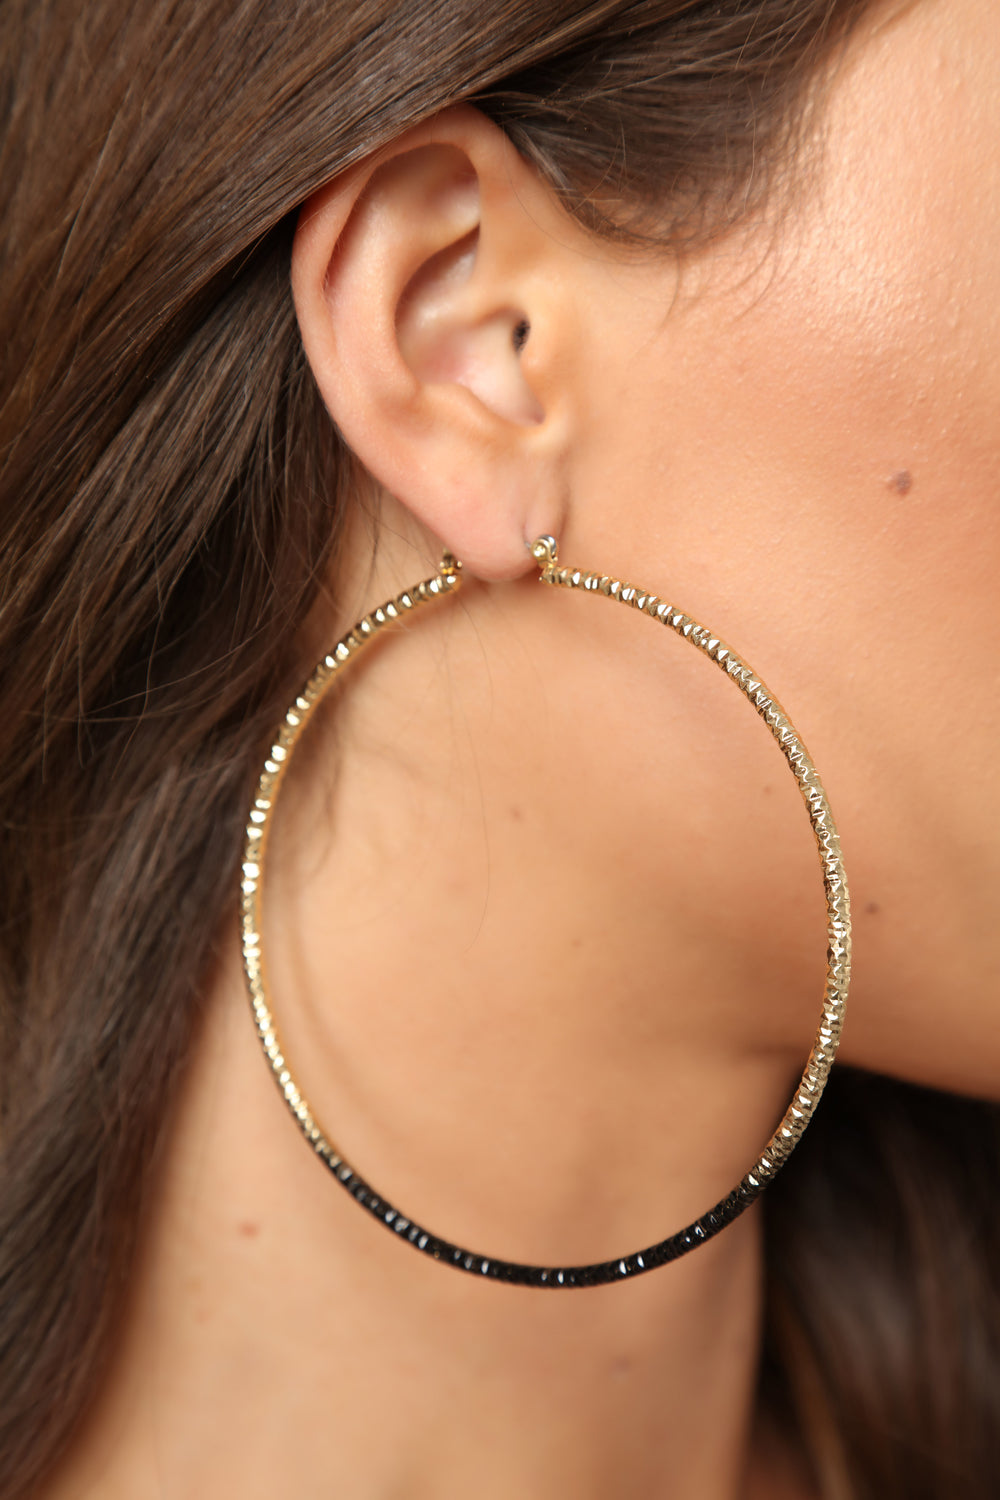 Dipped Down Low Hoops - Black